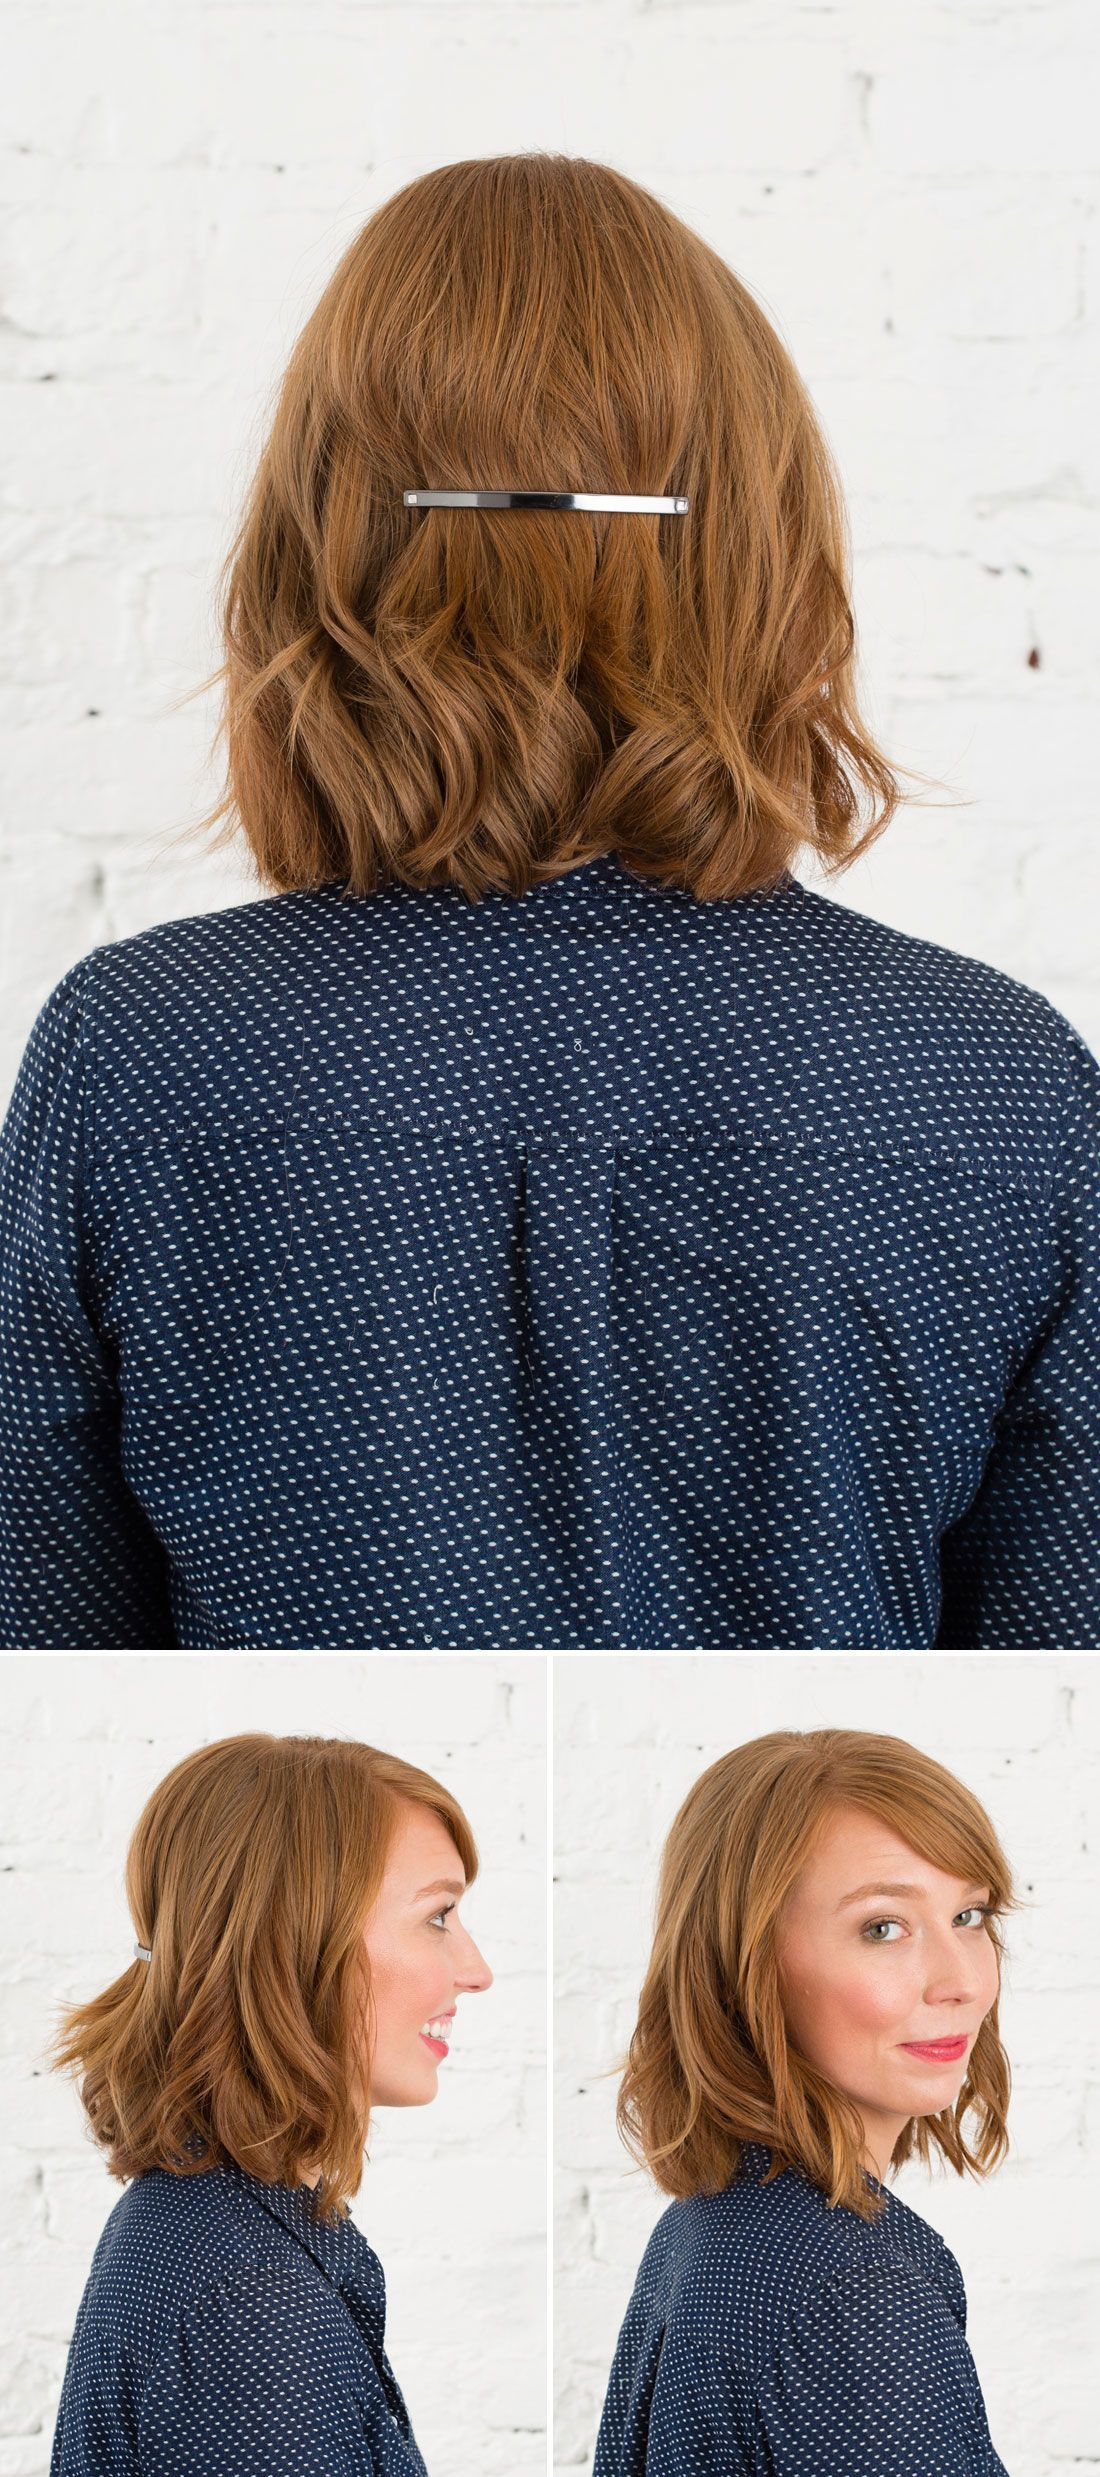 3 Easy 5 Minute Hairstyles Using Emma Stone s Metal Barrette